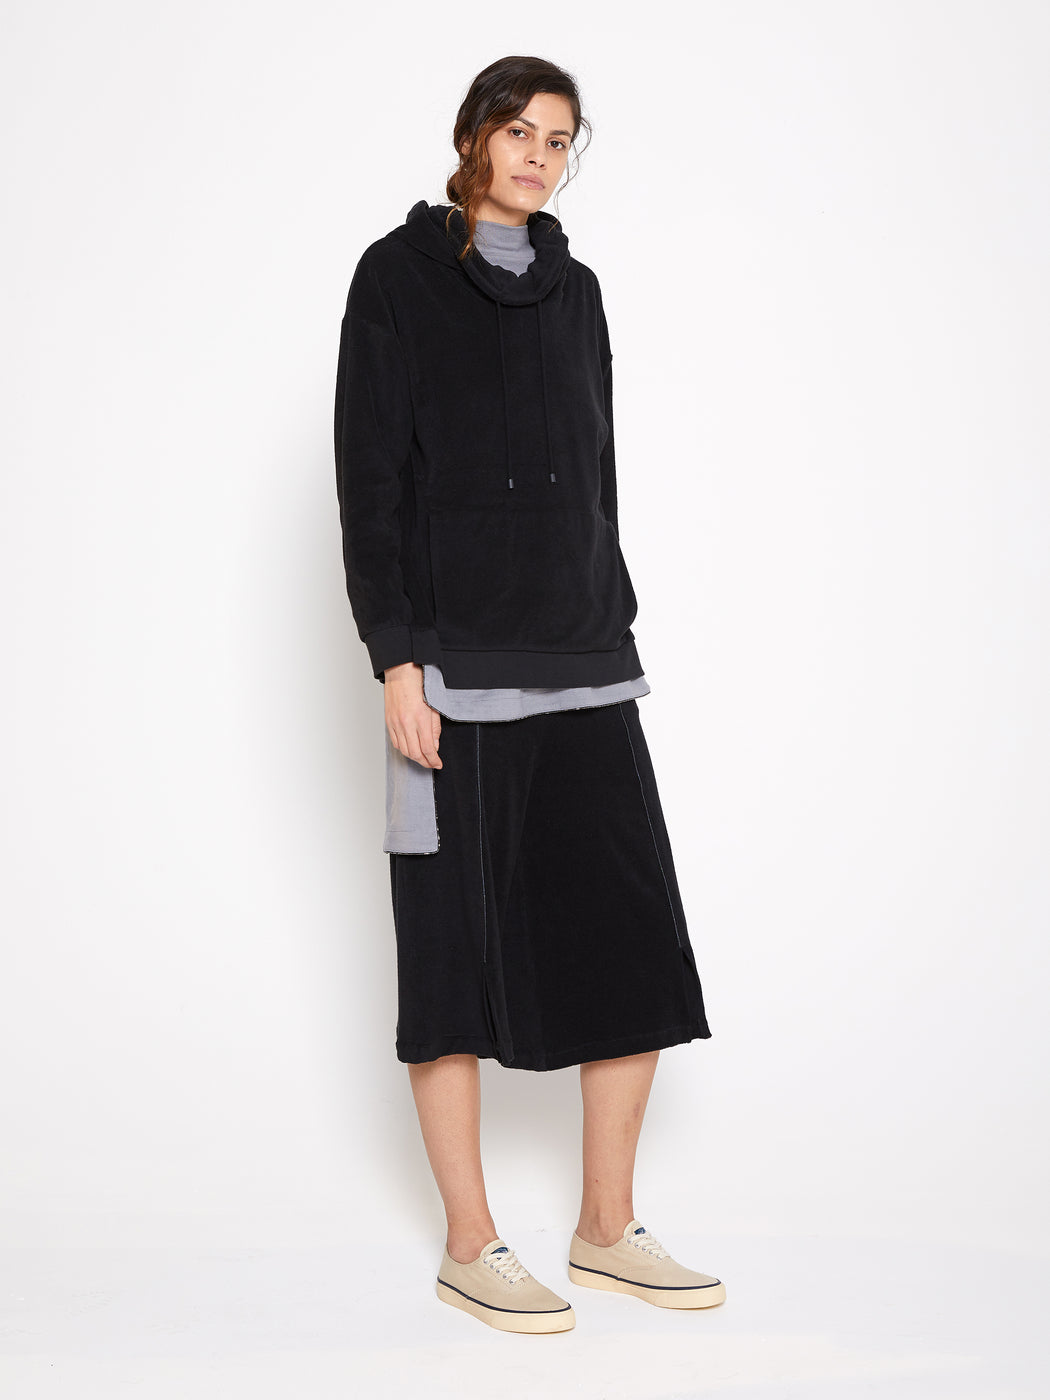 Model wearing Women Draped Collar Pullover, made with Organic Cotton in Black (Side View)